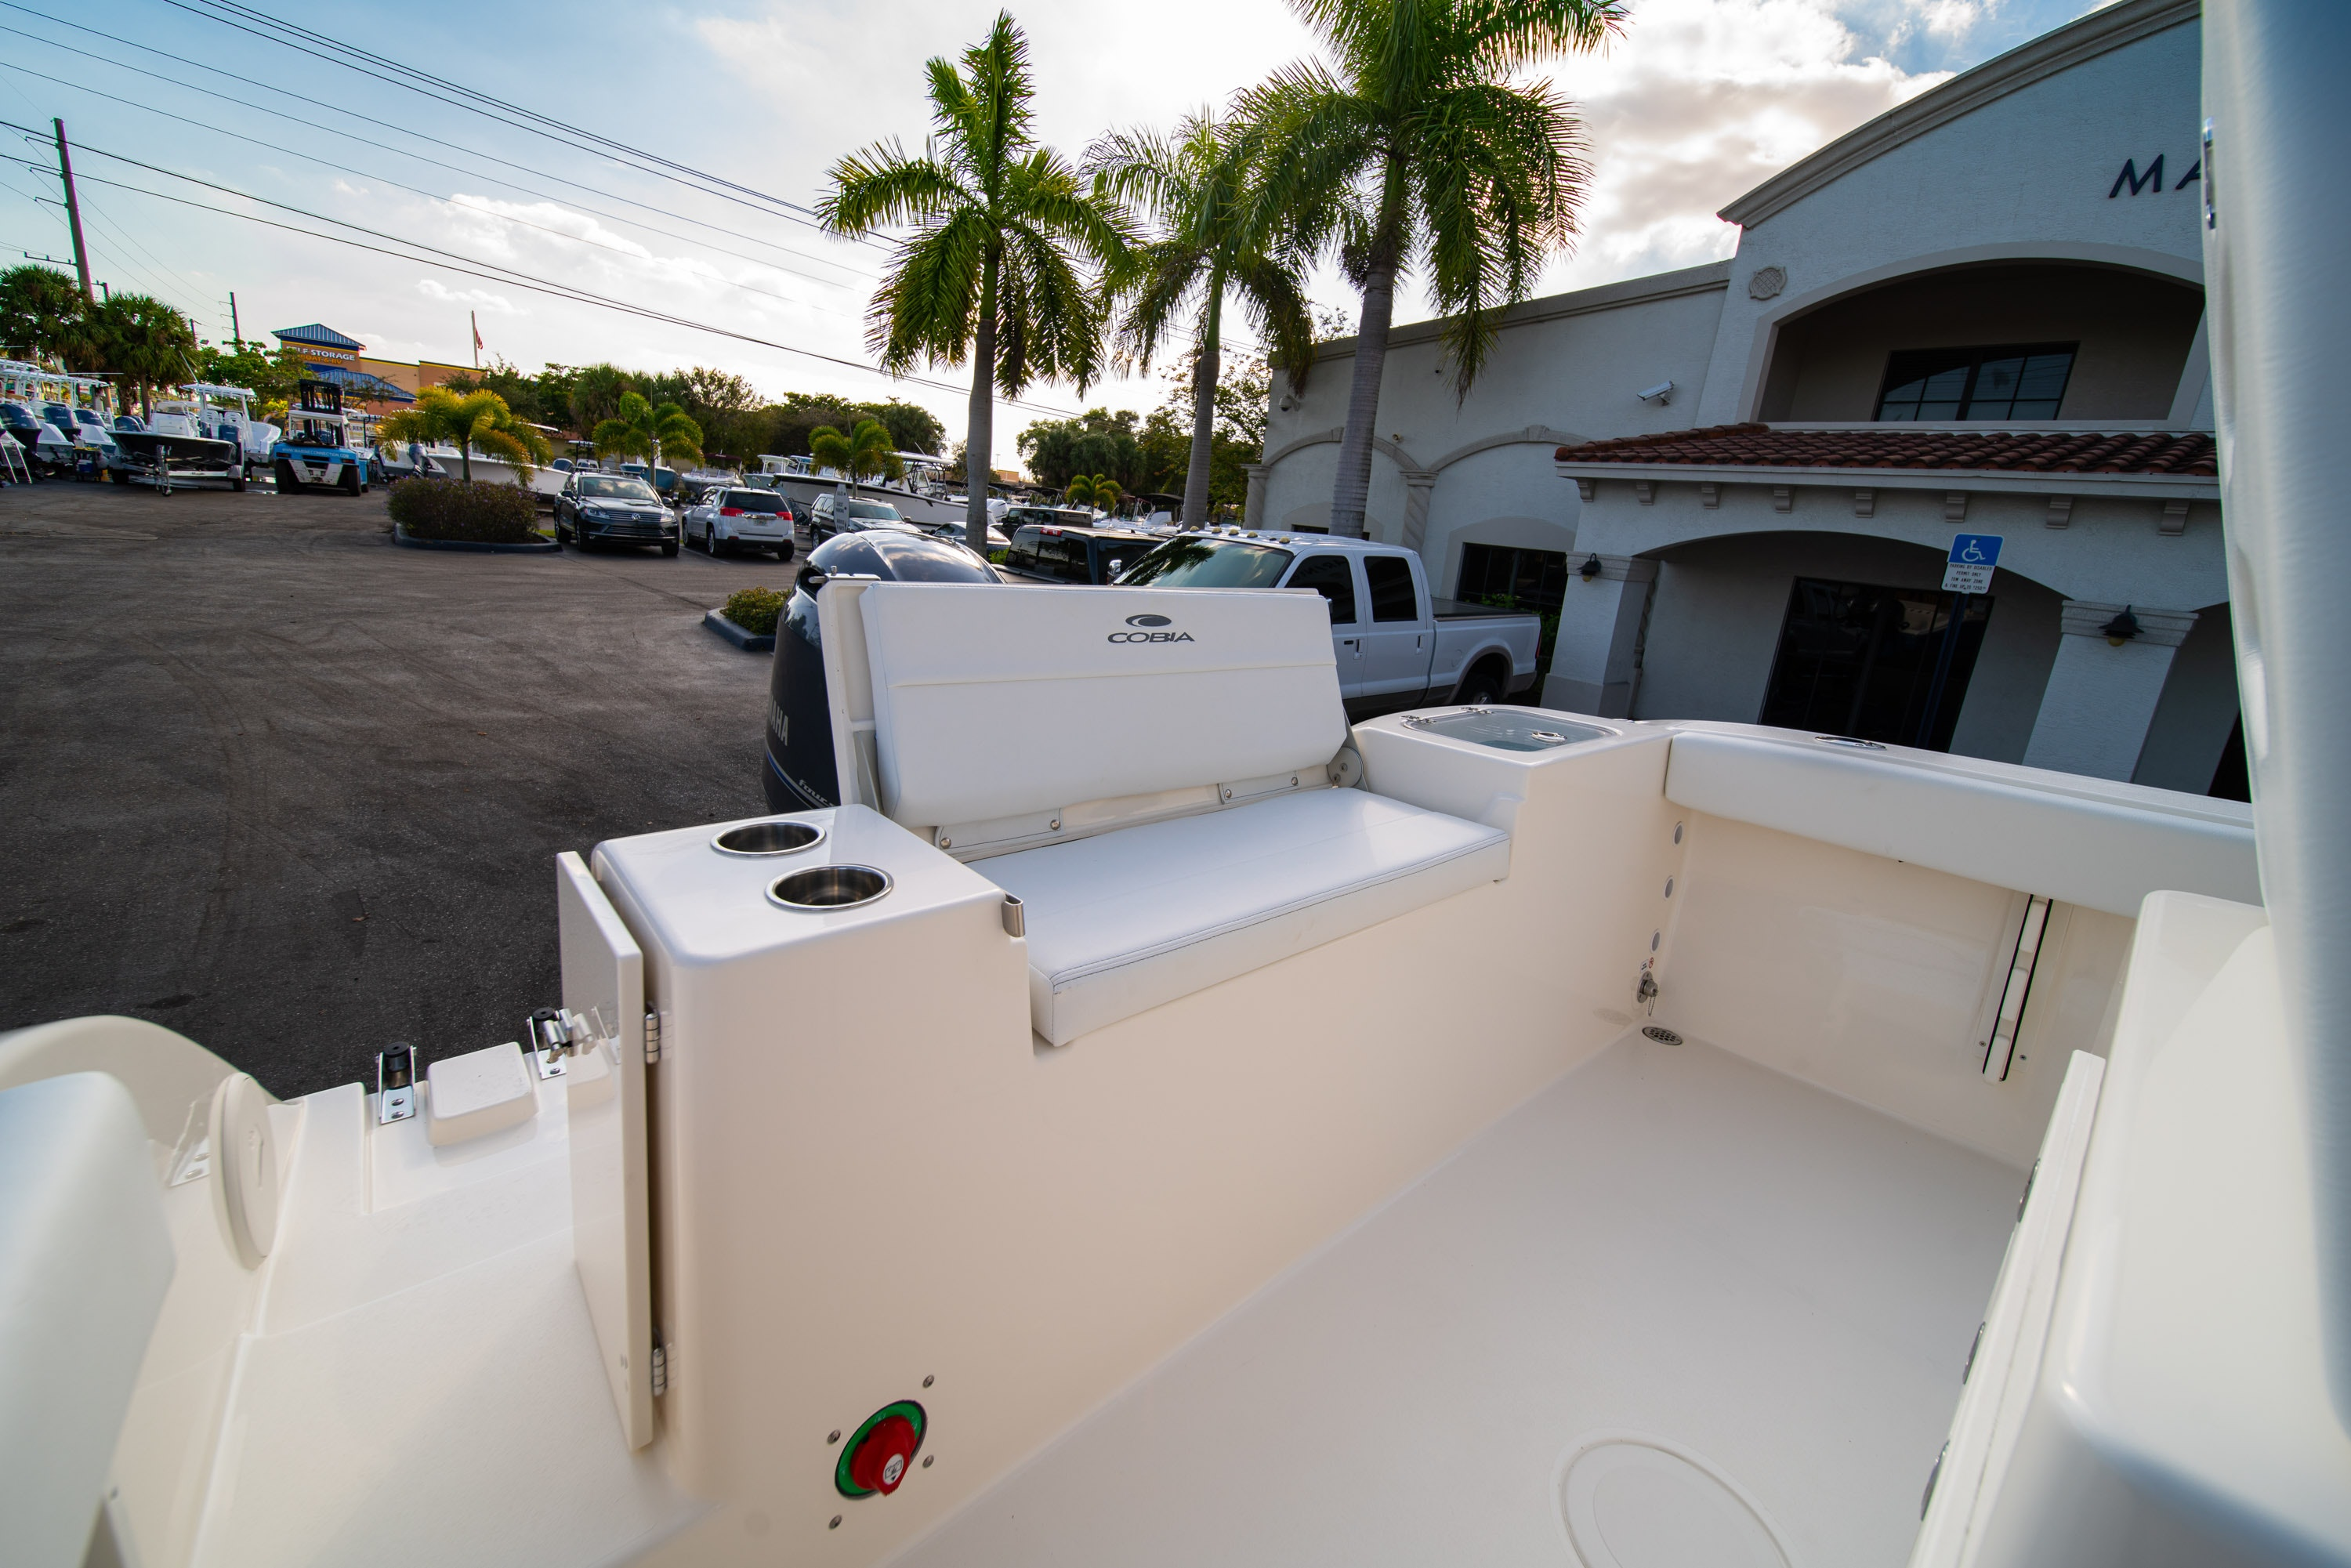 Thumbnail 10 for New 2020 Cobia 220 CC boat for sale in West Palm Beach, FL